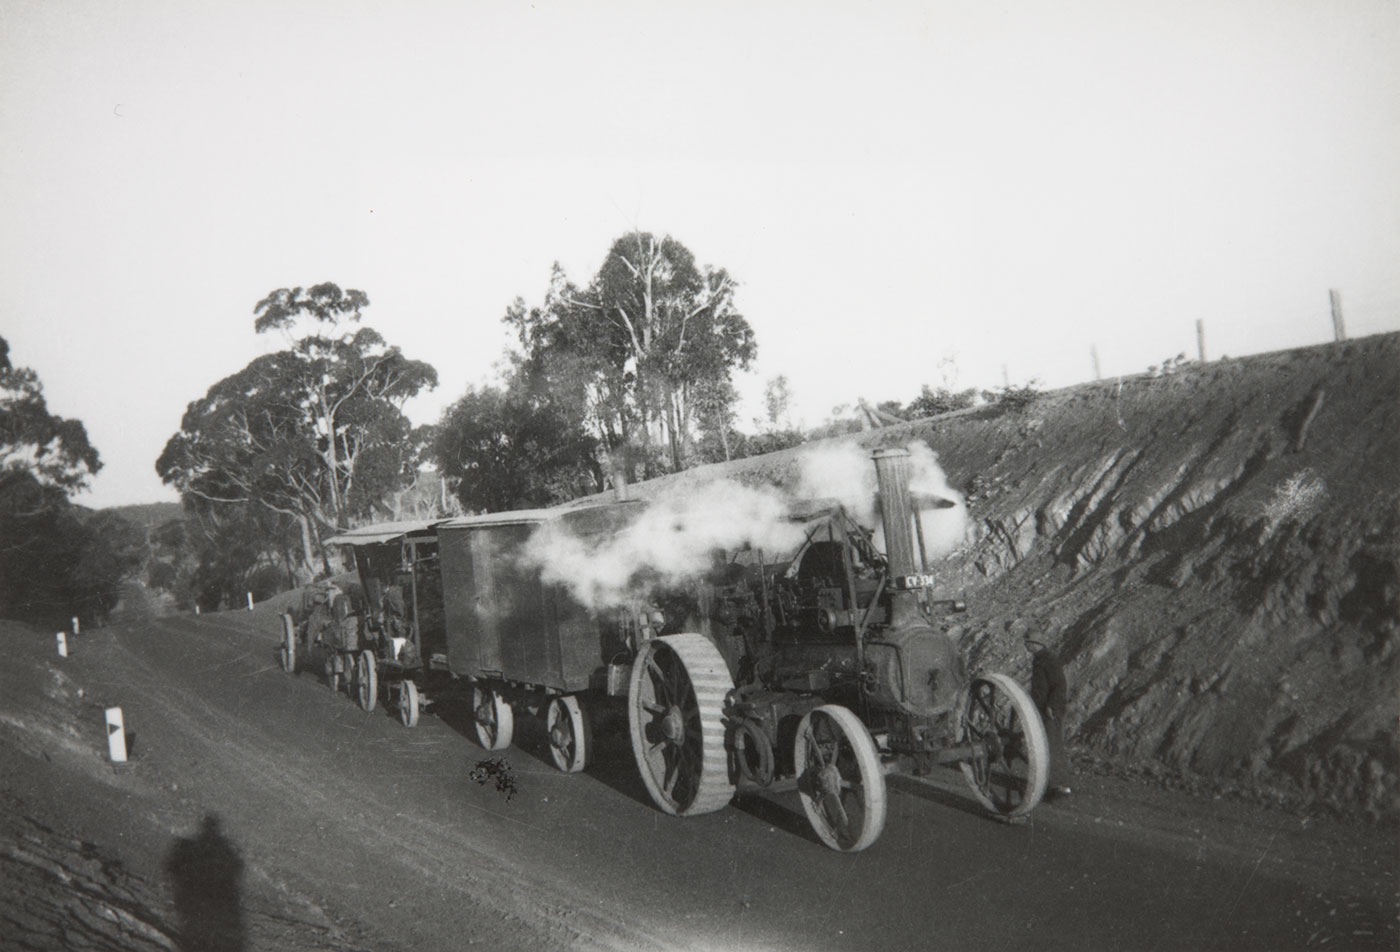 Steam-powered vehicle towing carriages on a dirt road. - click to view larger image